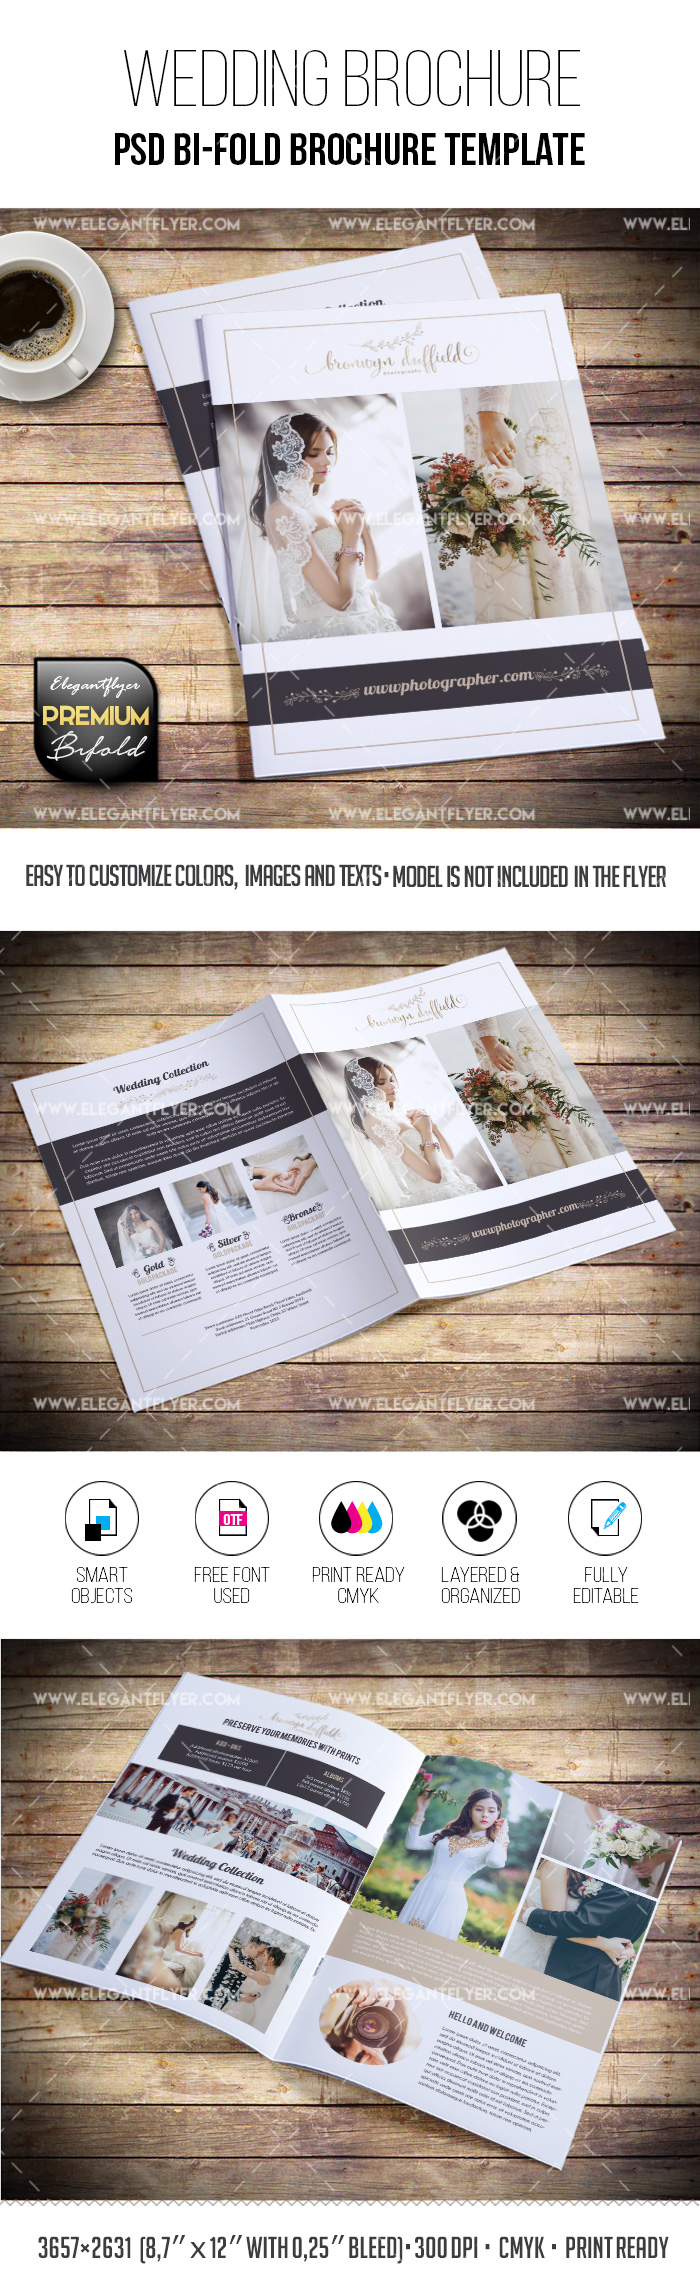 Wedding Photo – PSD Premium Bi-Fold Template